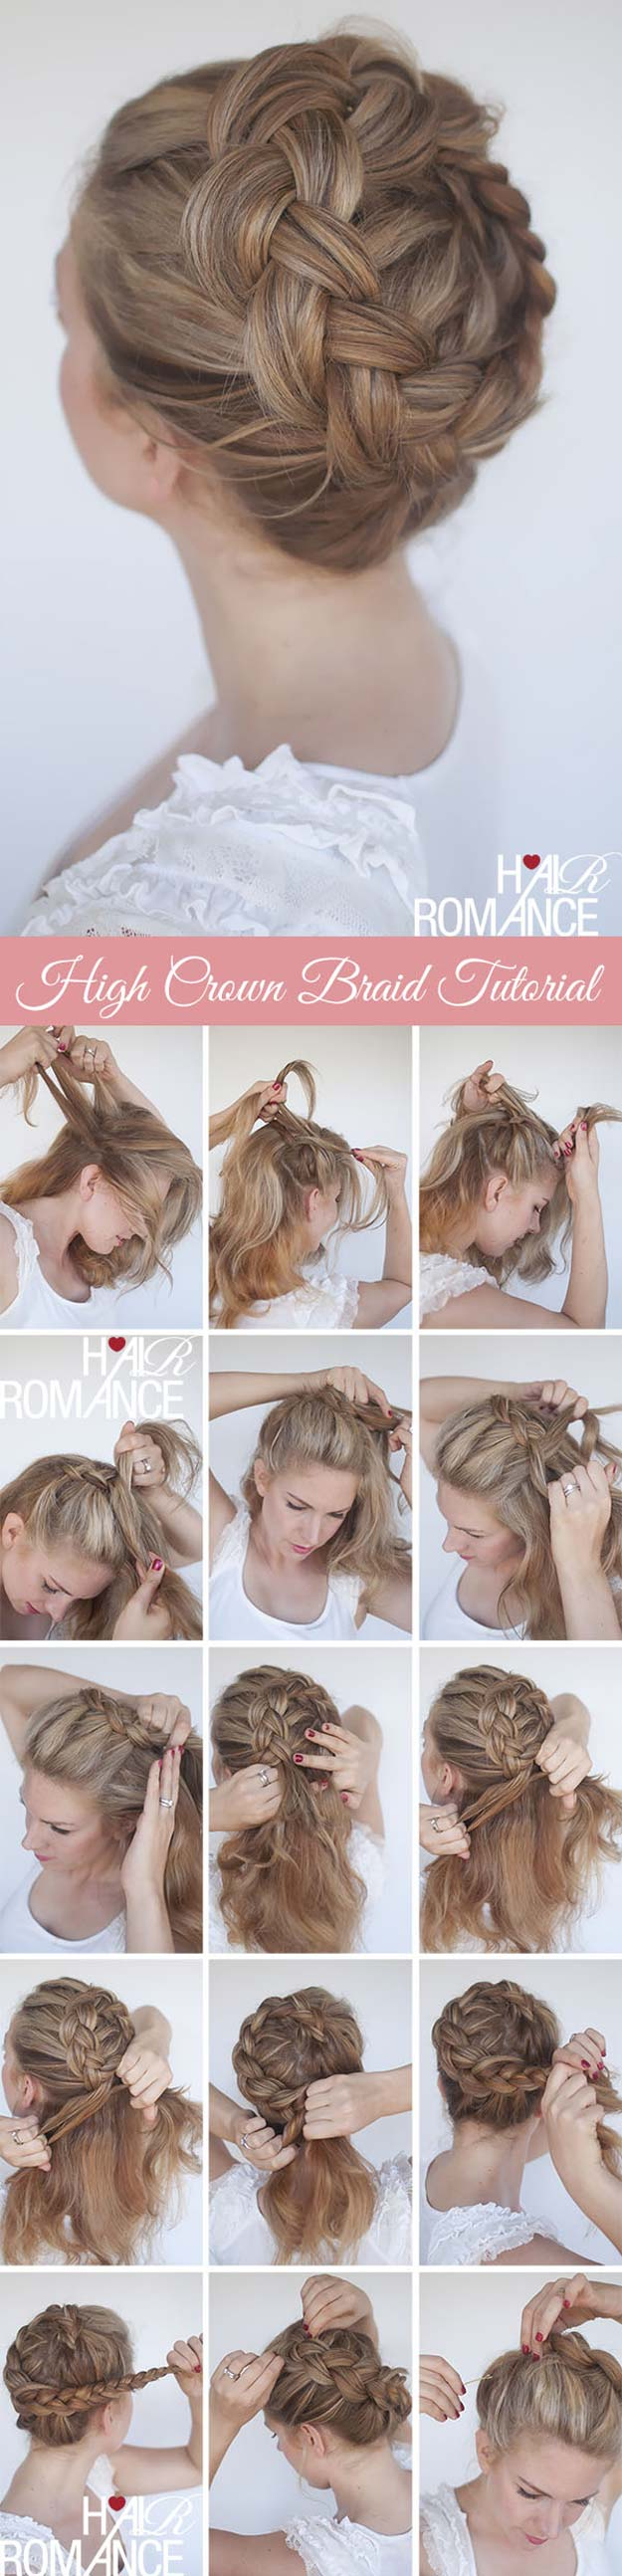 Best Hair Braiding Tutorials - High Braided Crown Tutorial - Easy Step by Step Tutorials for Braids - How To Braid Fishtail, French Braids, Flower Crown, Side Braids, Cornrows, Updos - Cool Braided Hairstyles for Girls, Teens and Women - School, Day and Evening, Boho, Casual and Formal Looks #hairstyles #braiding #braidingtutorials #diyhair